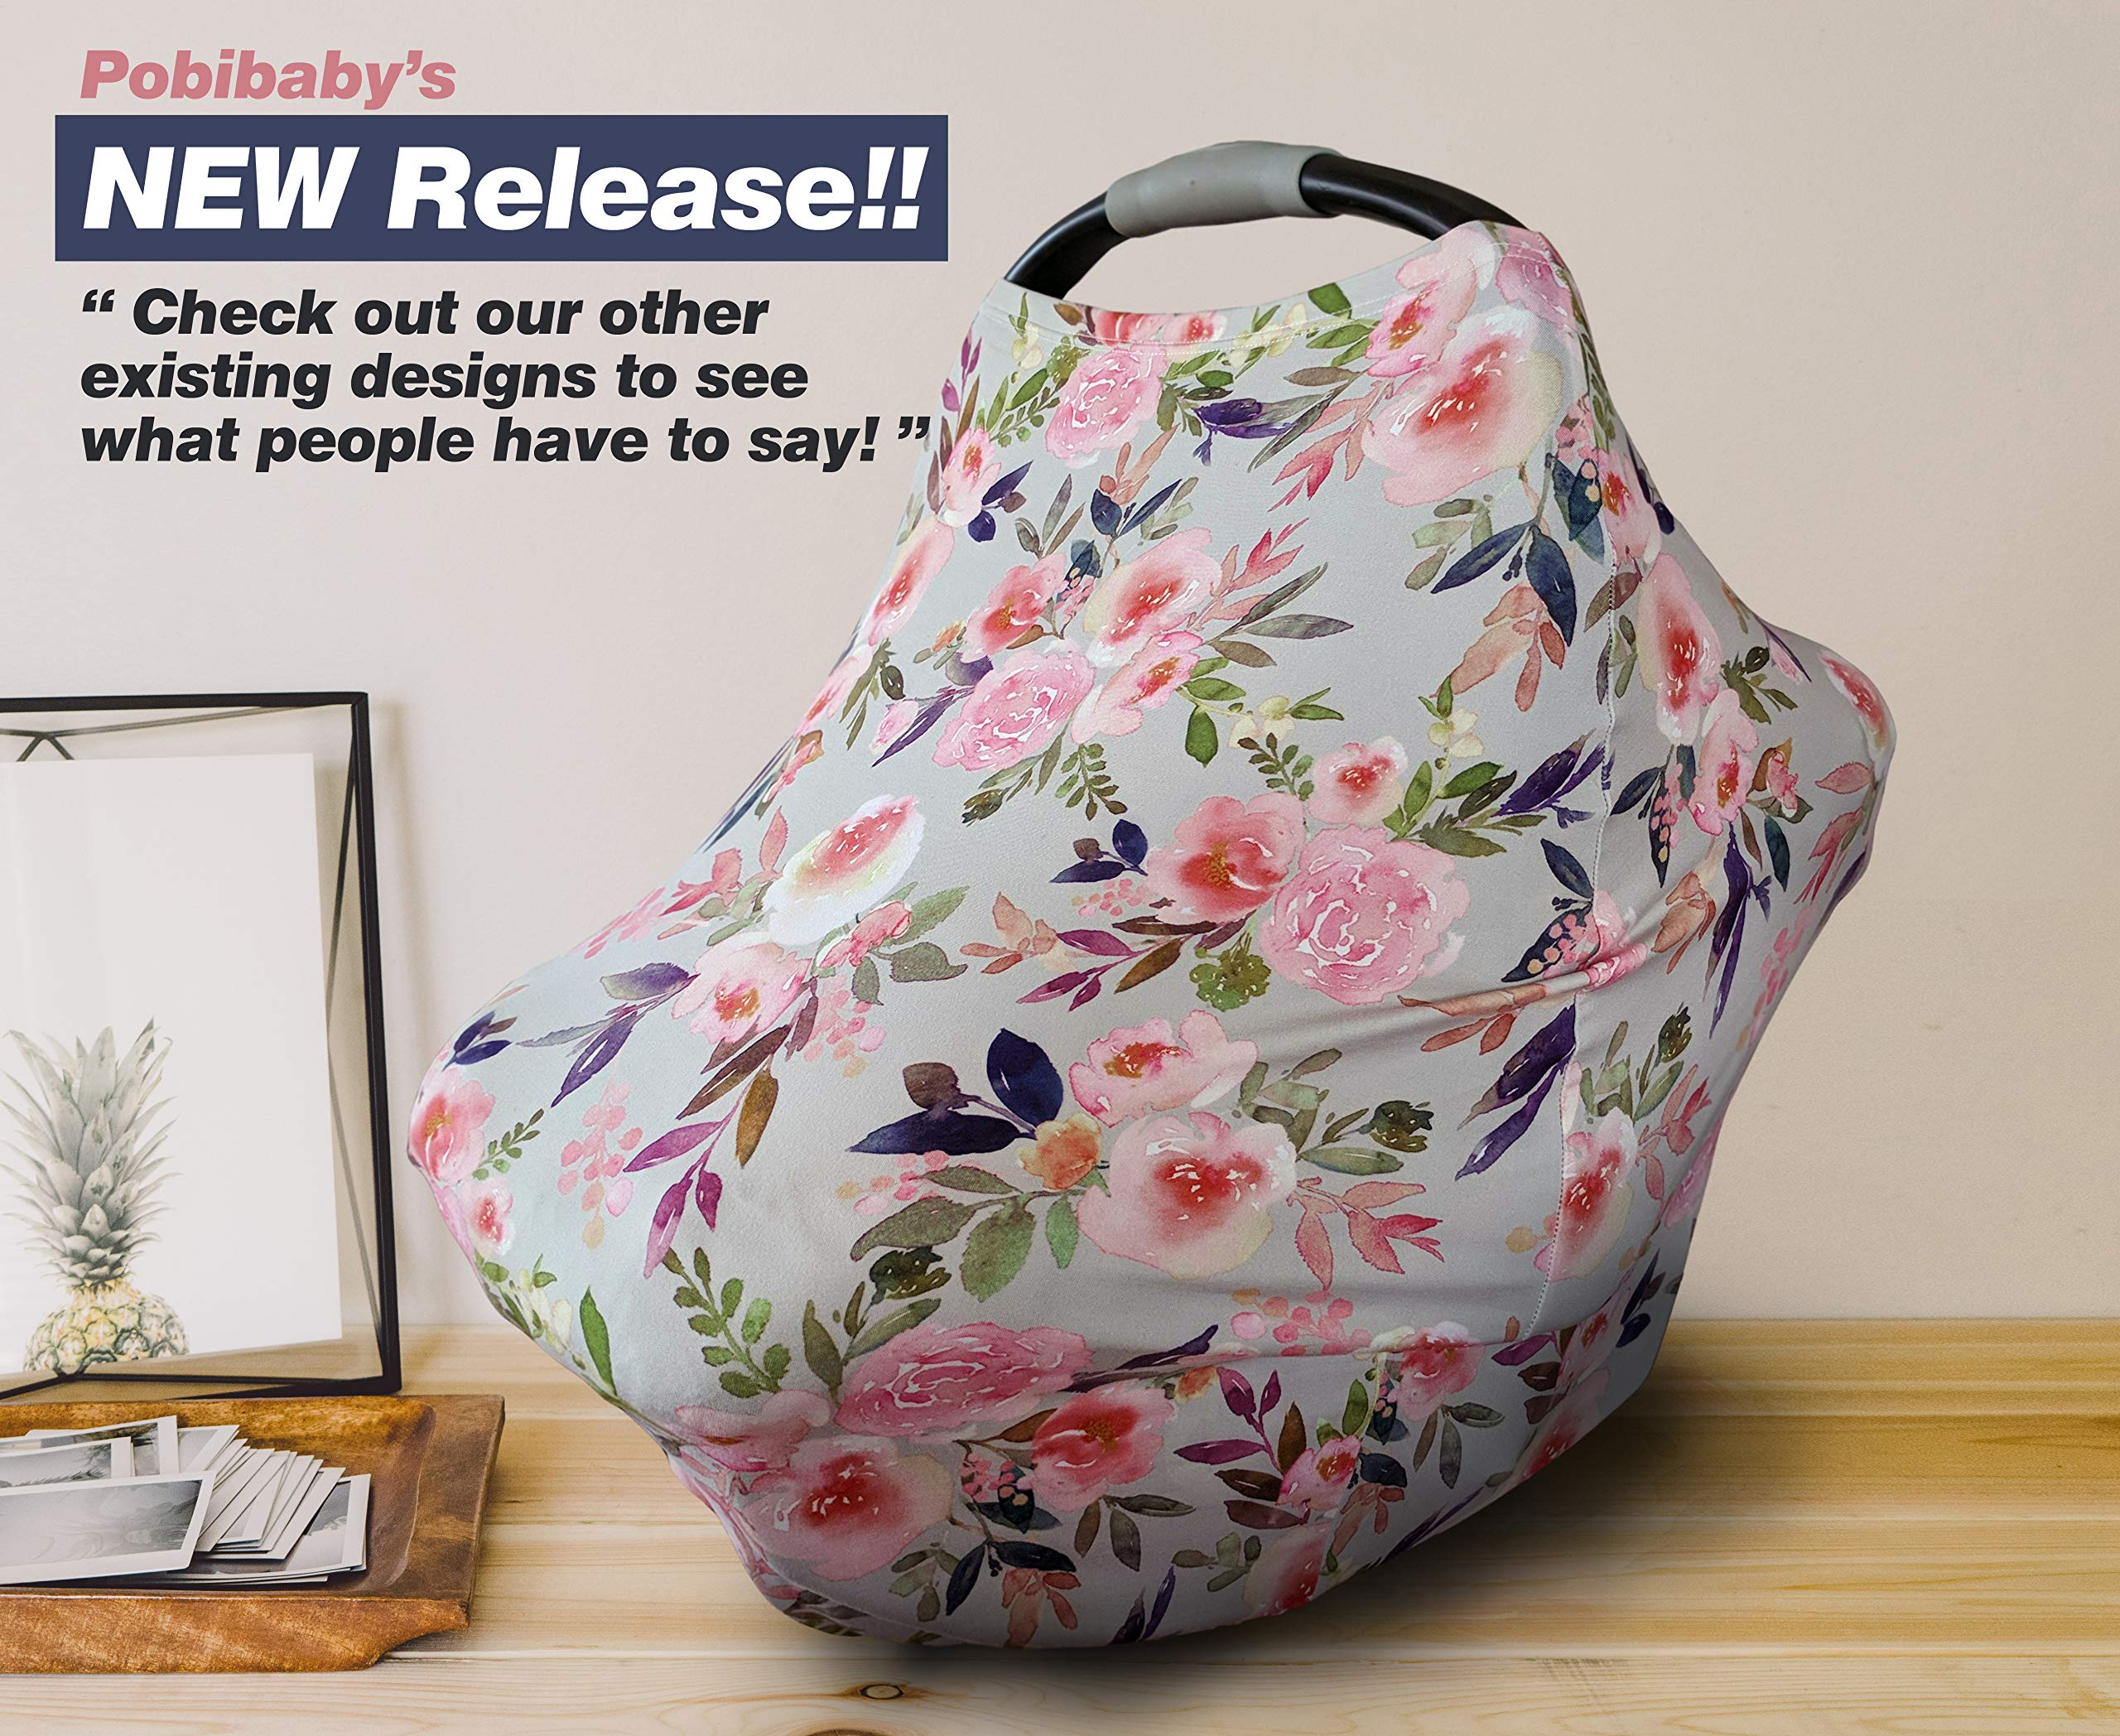 Premium Soft, Stretchy, and Spacious 4 in 1 Multi-Use Cover for Nursing, Baby Car Seat, Stroller, Scarf, and Shopping Cart - Best Gifts by Pobibaby (Grace) by Pobibaby (Image #2)